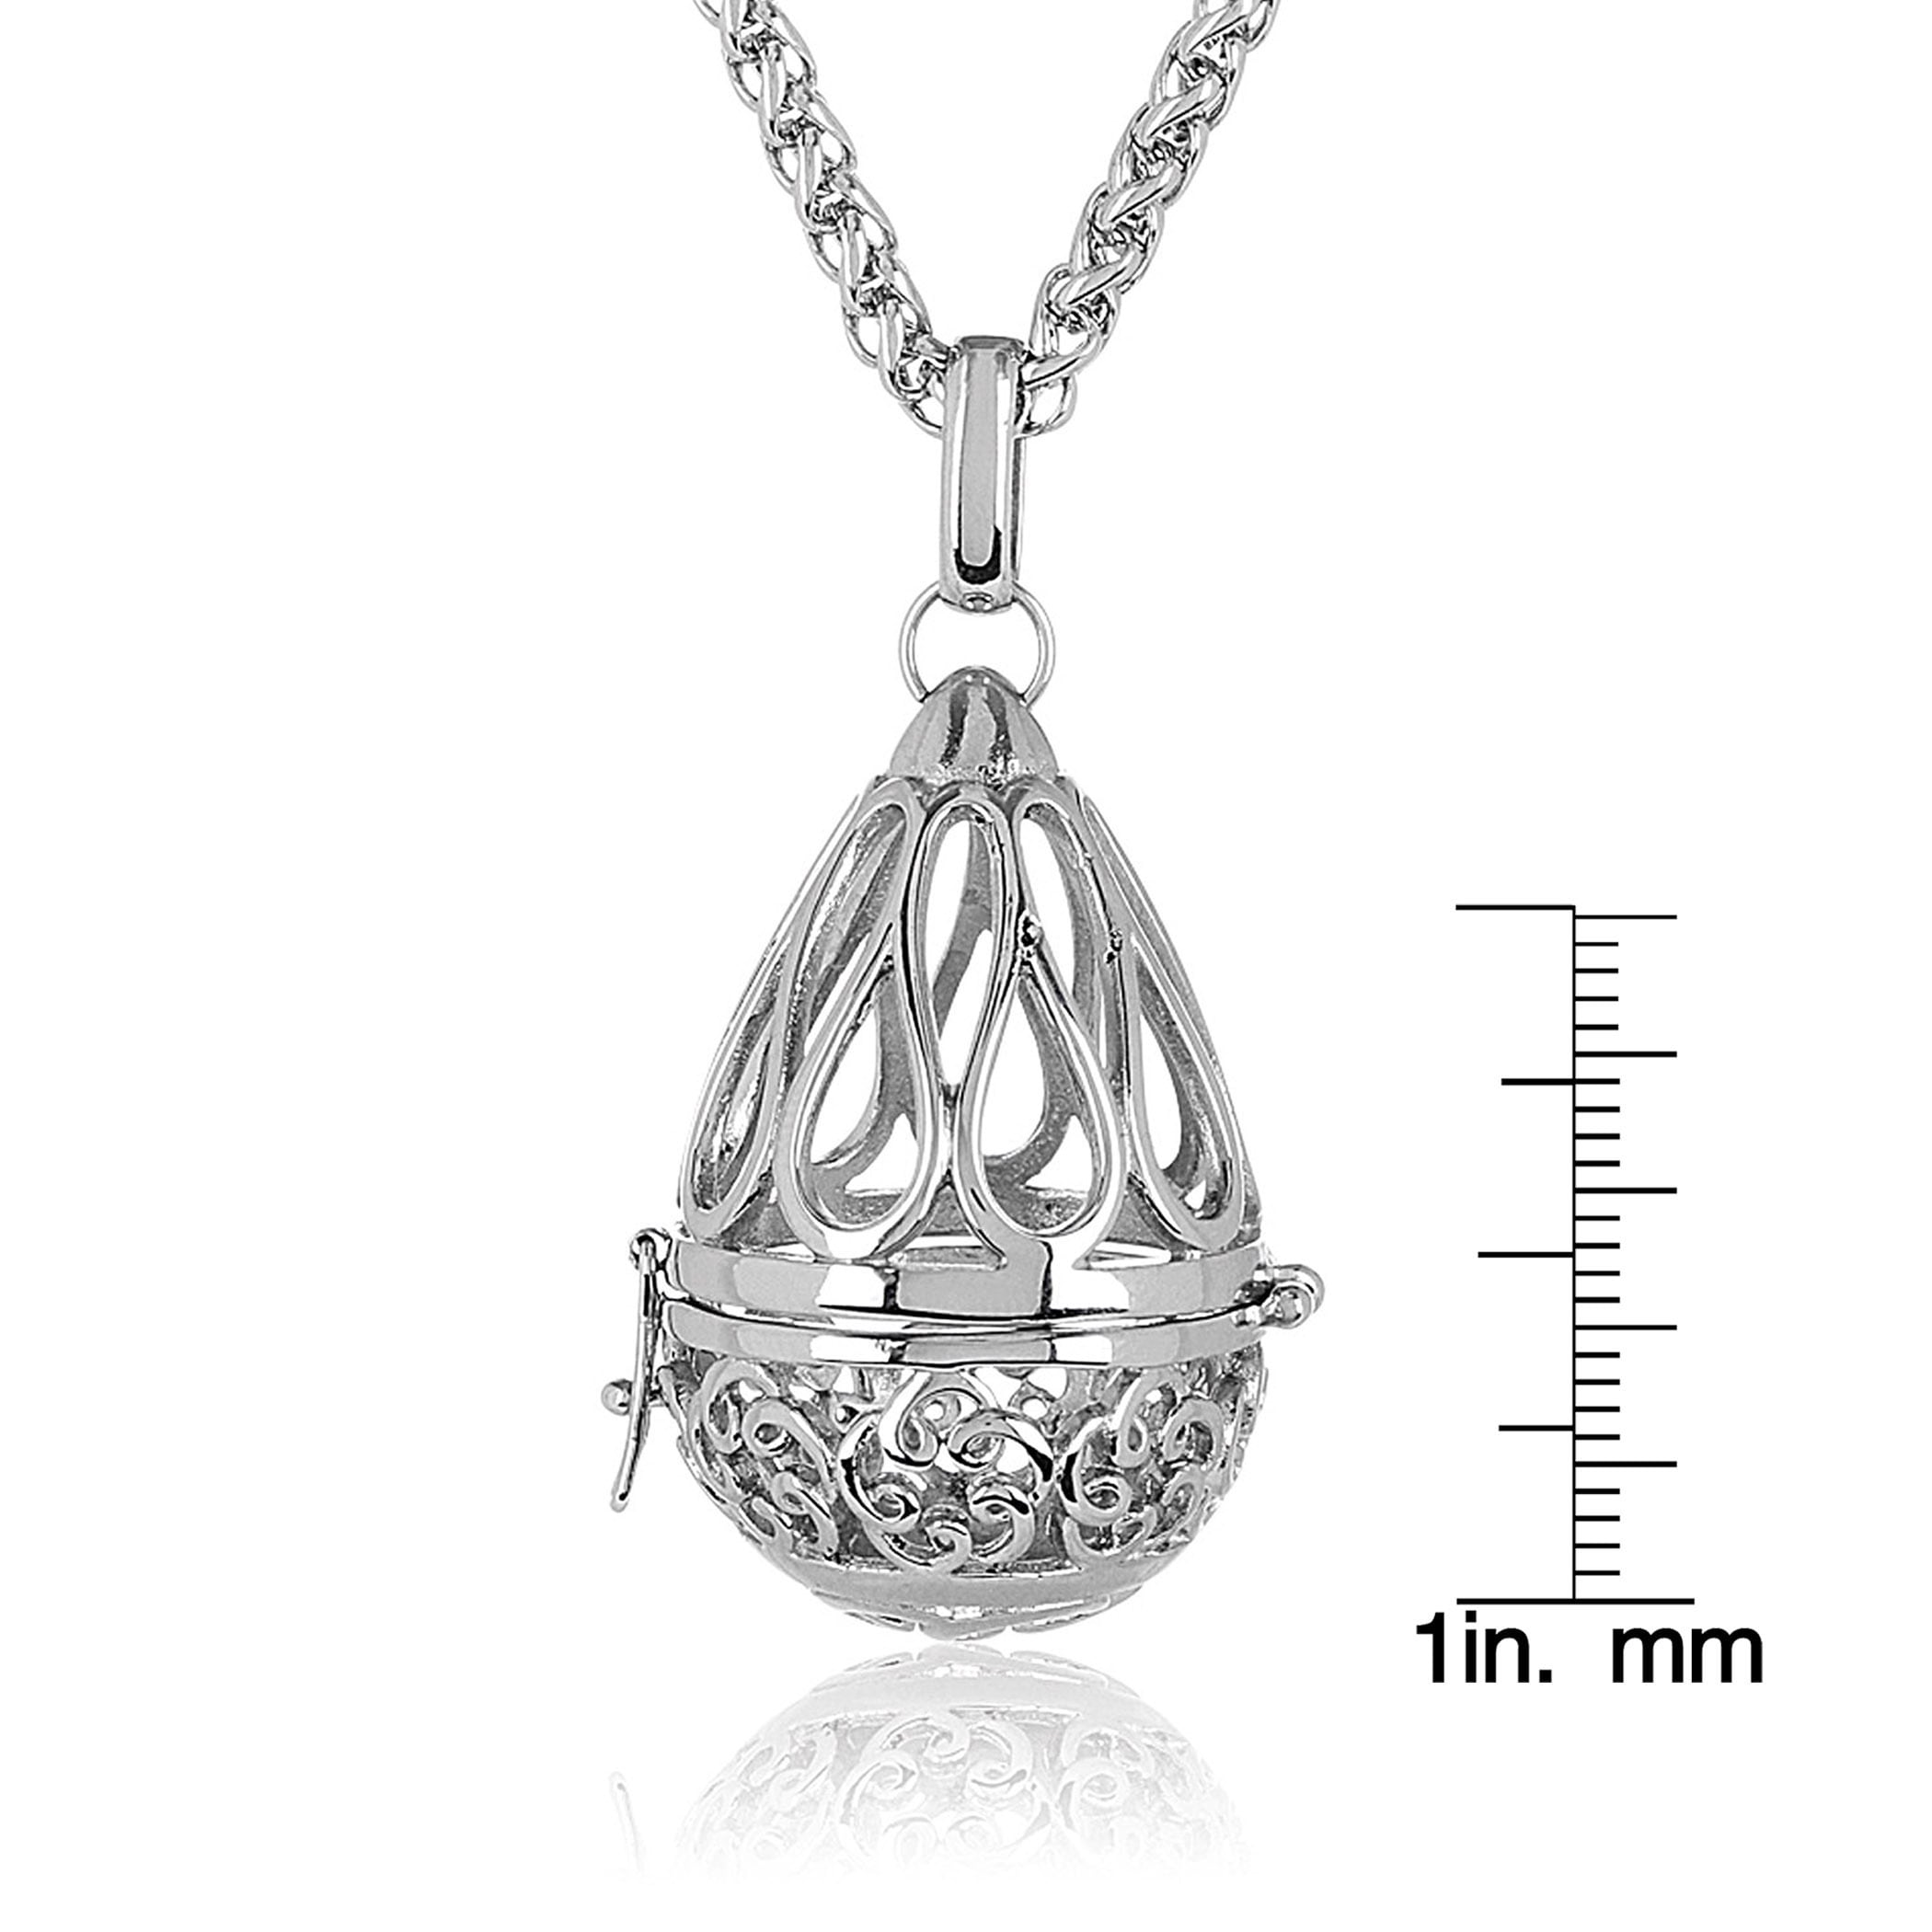 delivery insured online jqb buy m silver sterling uk locket teardrop free lockets